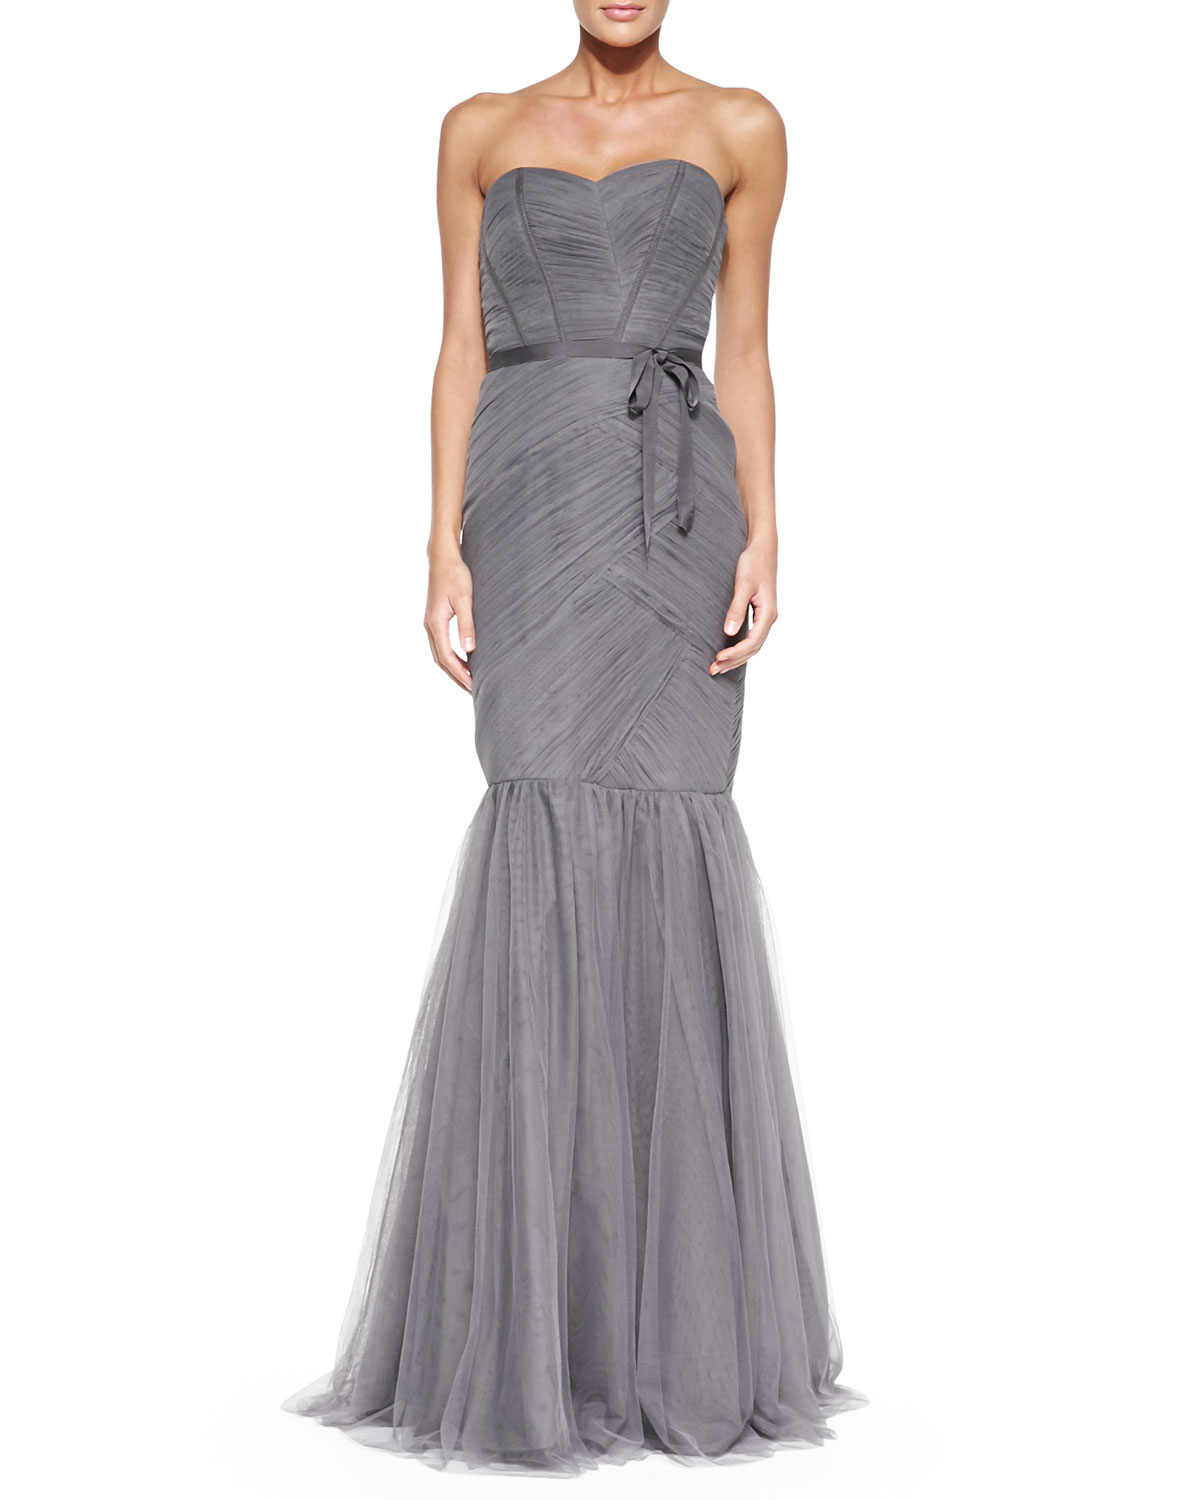 Monique lhuillier Strapless Ruched Tulle Gown in Gray